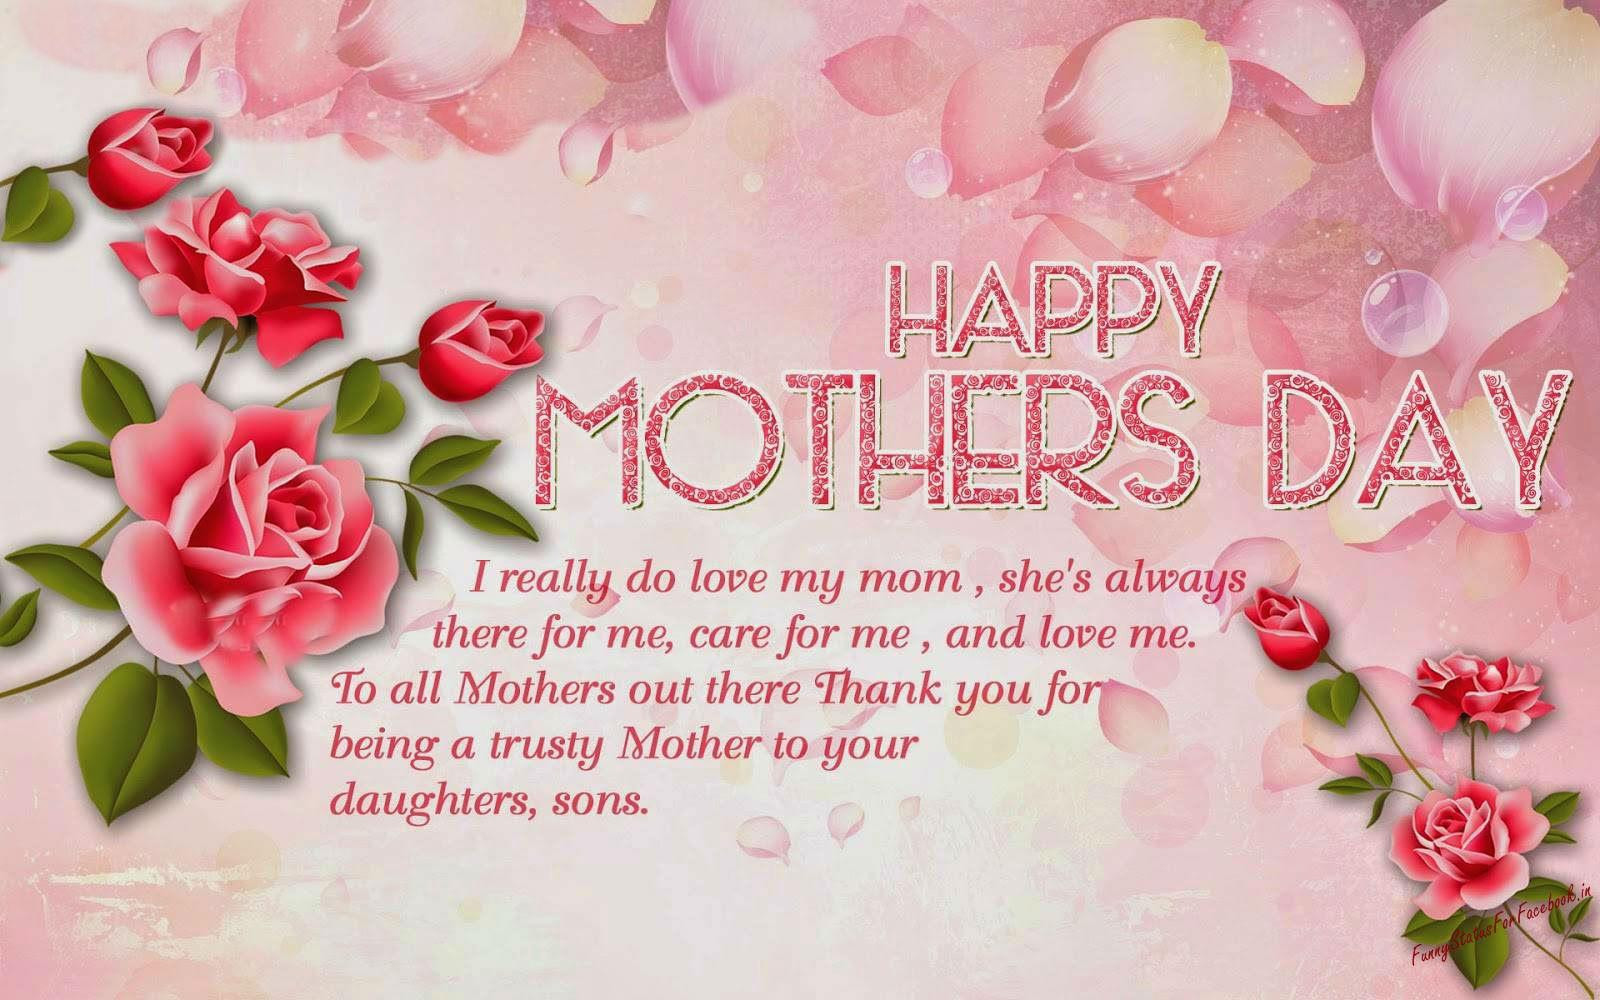 Happy Mothers Day To All Mothers Quotes  Happy Mother s Day Quotes for my best Friend